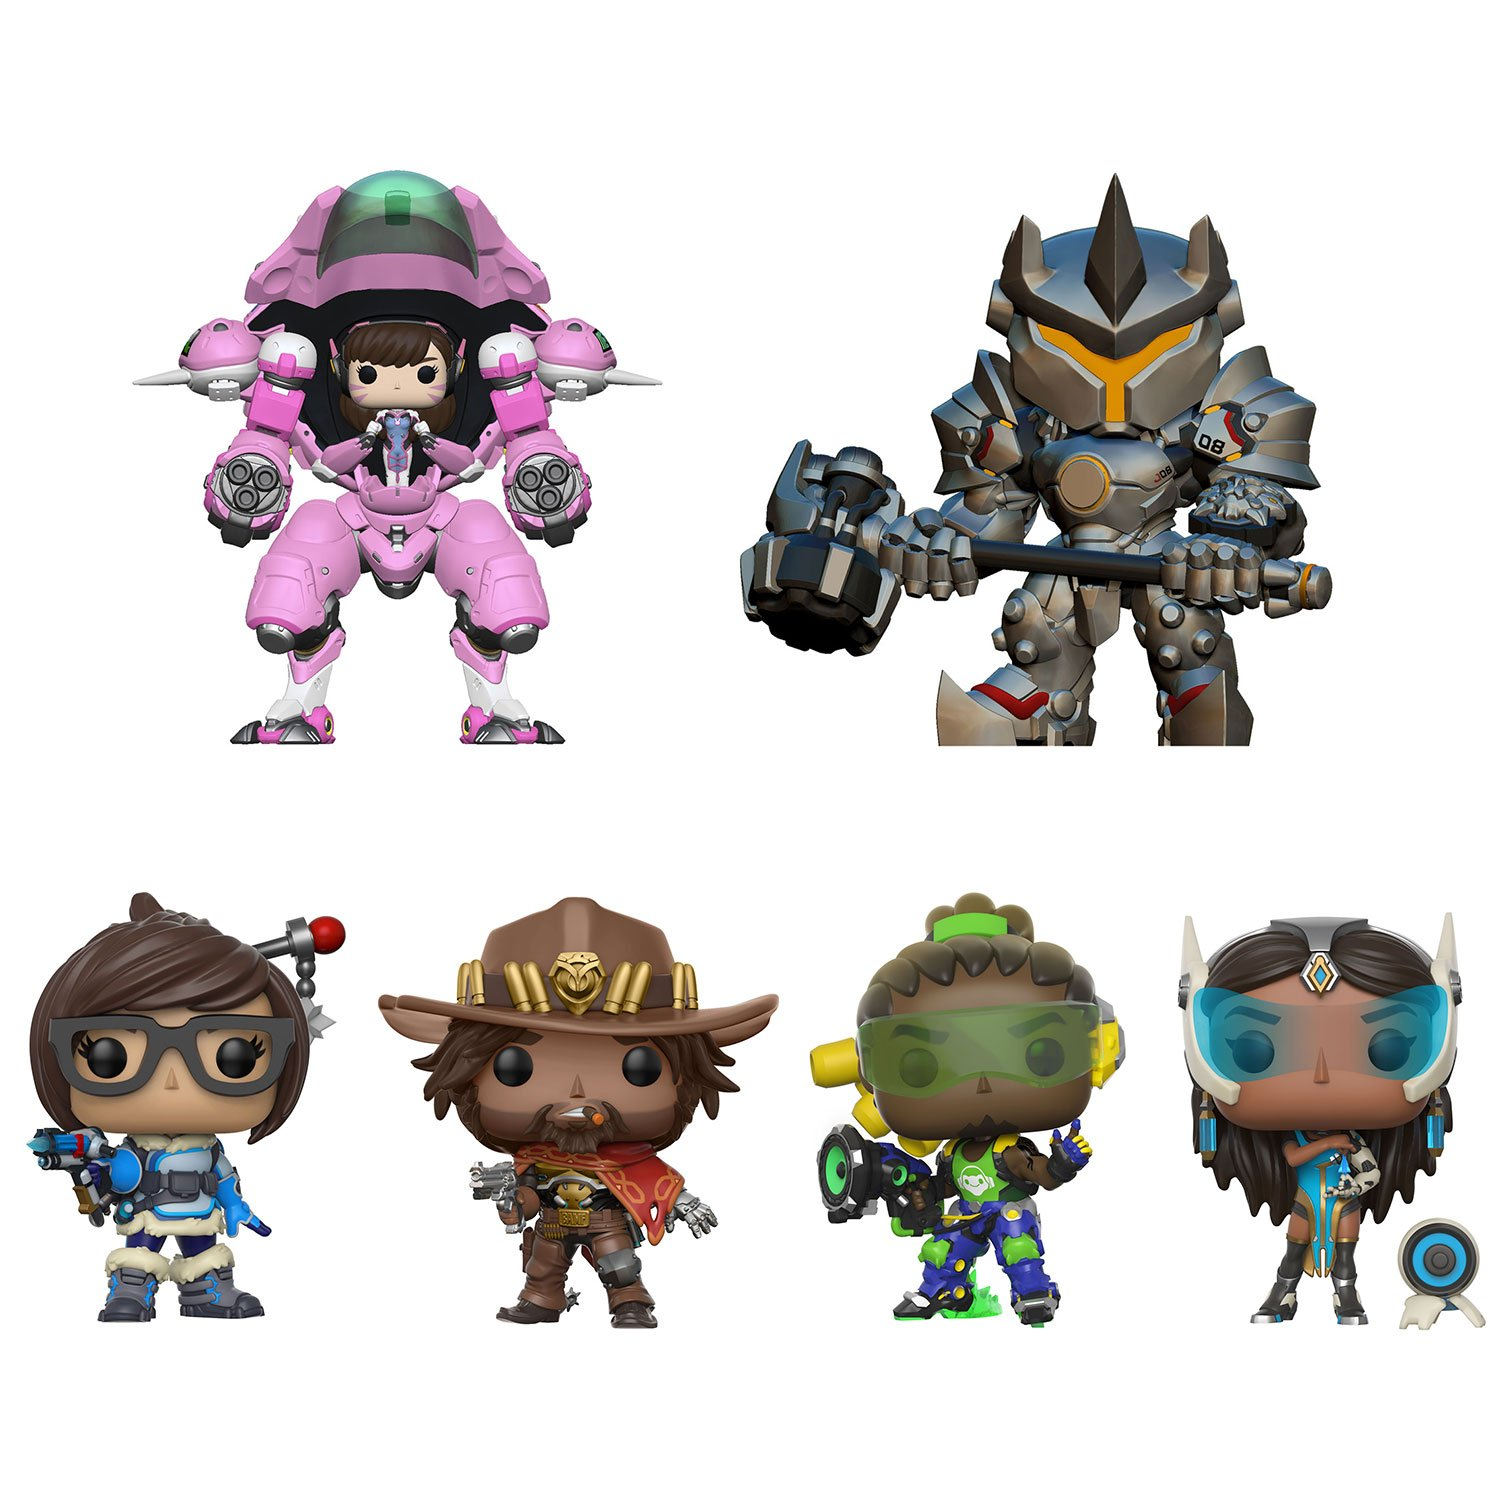 Neue Overwatch Funko Pop Figuren